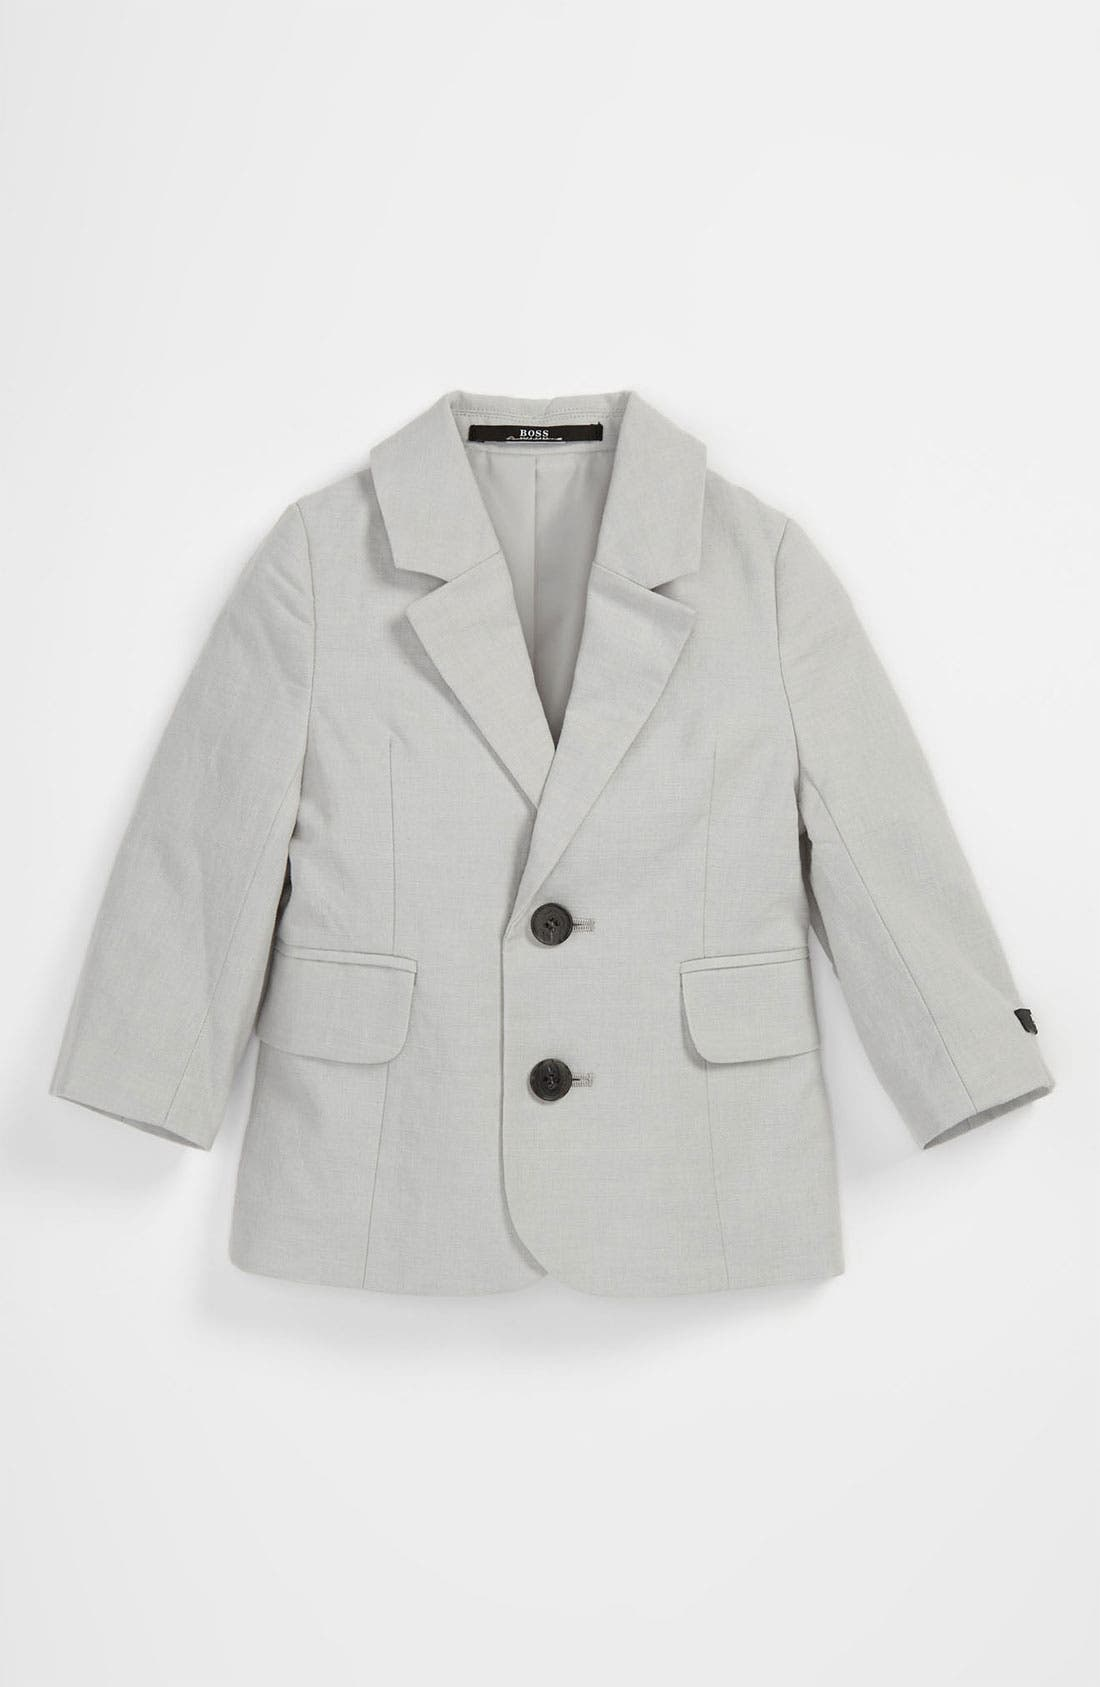 Alternate Image 1 Selected - BOSS Kidswear Two Button Linen Blend Jacket (Baby & Toddler)